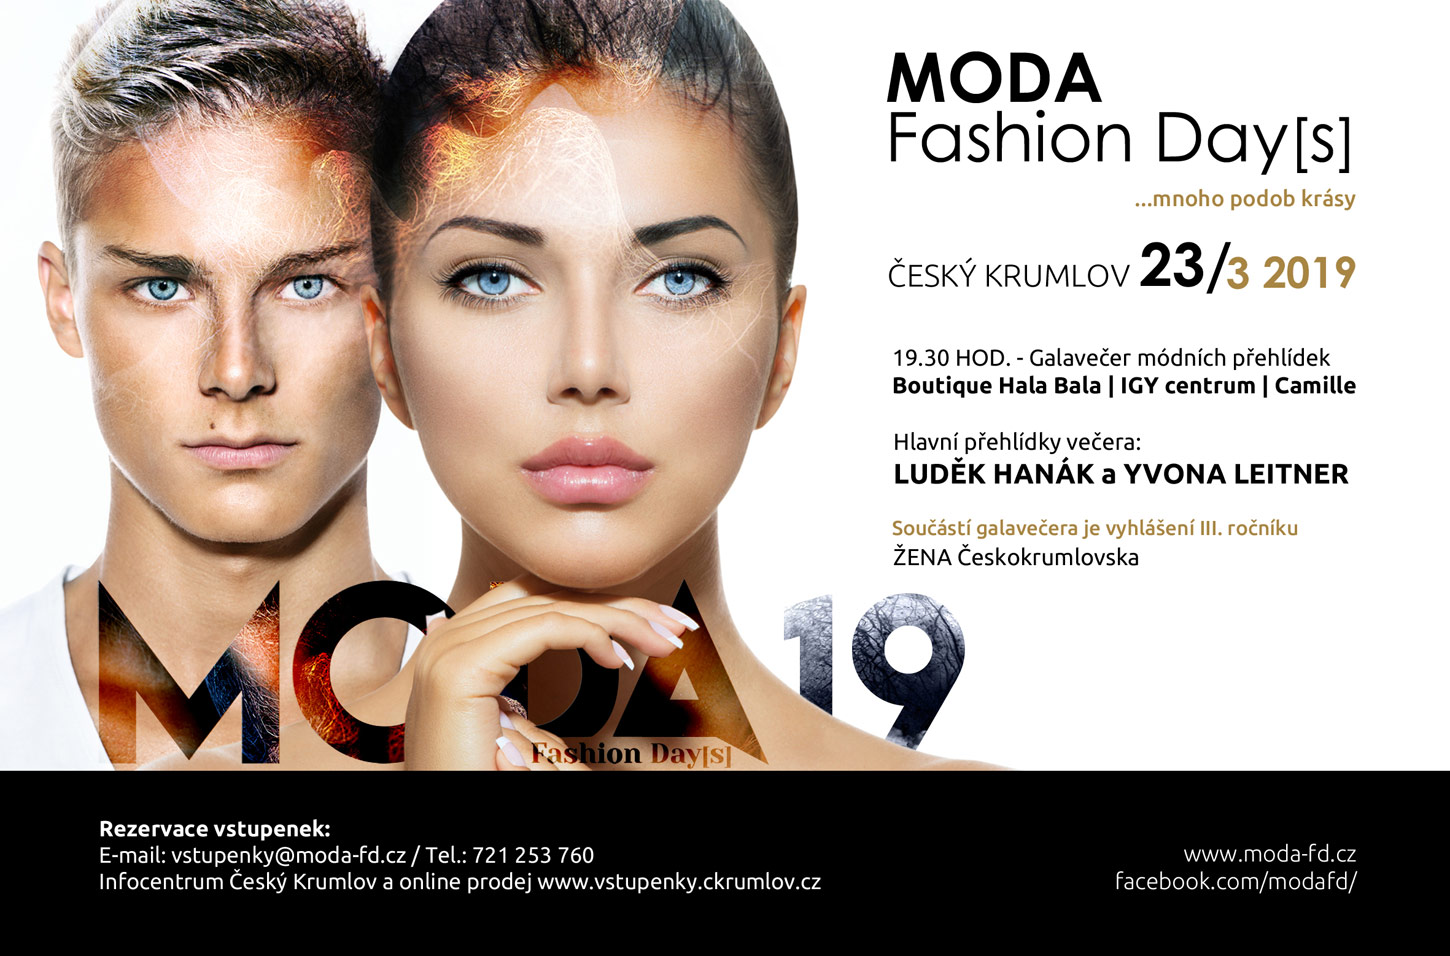 MODA Fashion Day[s]